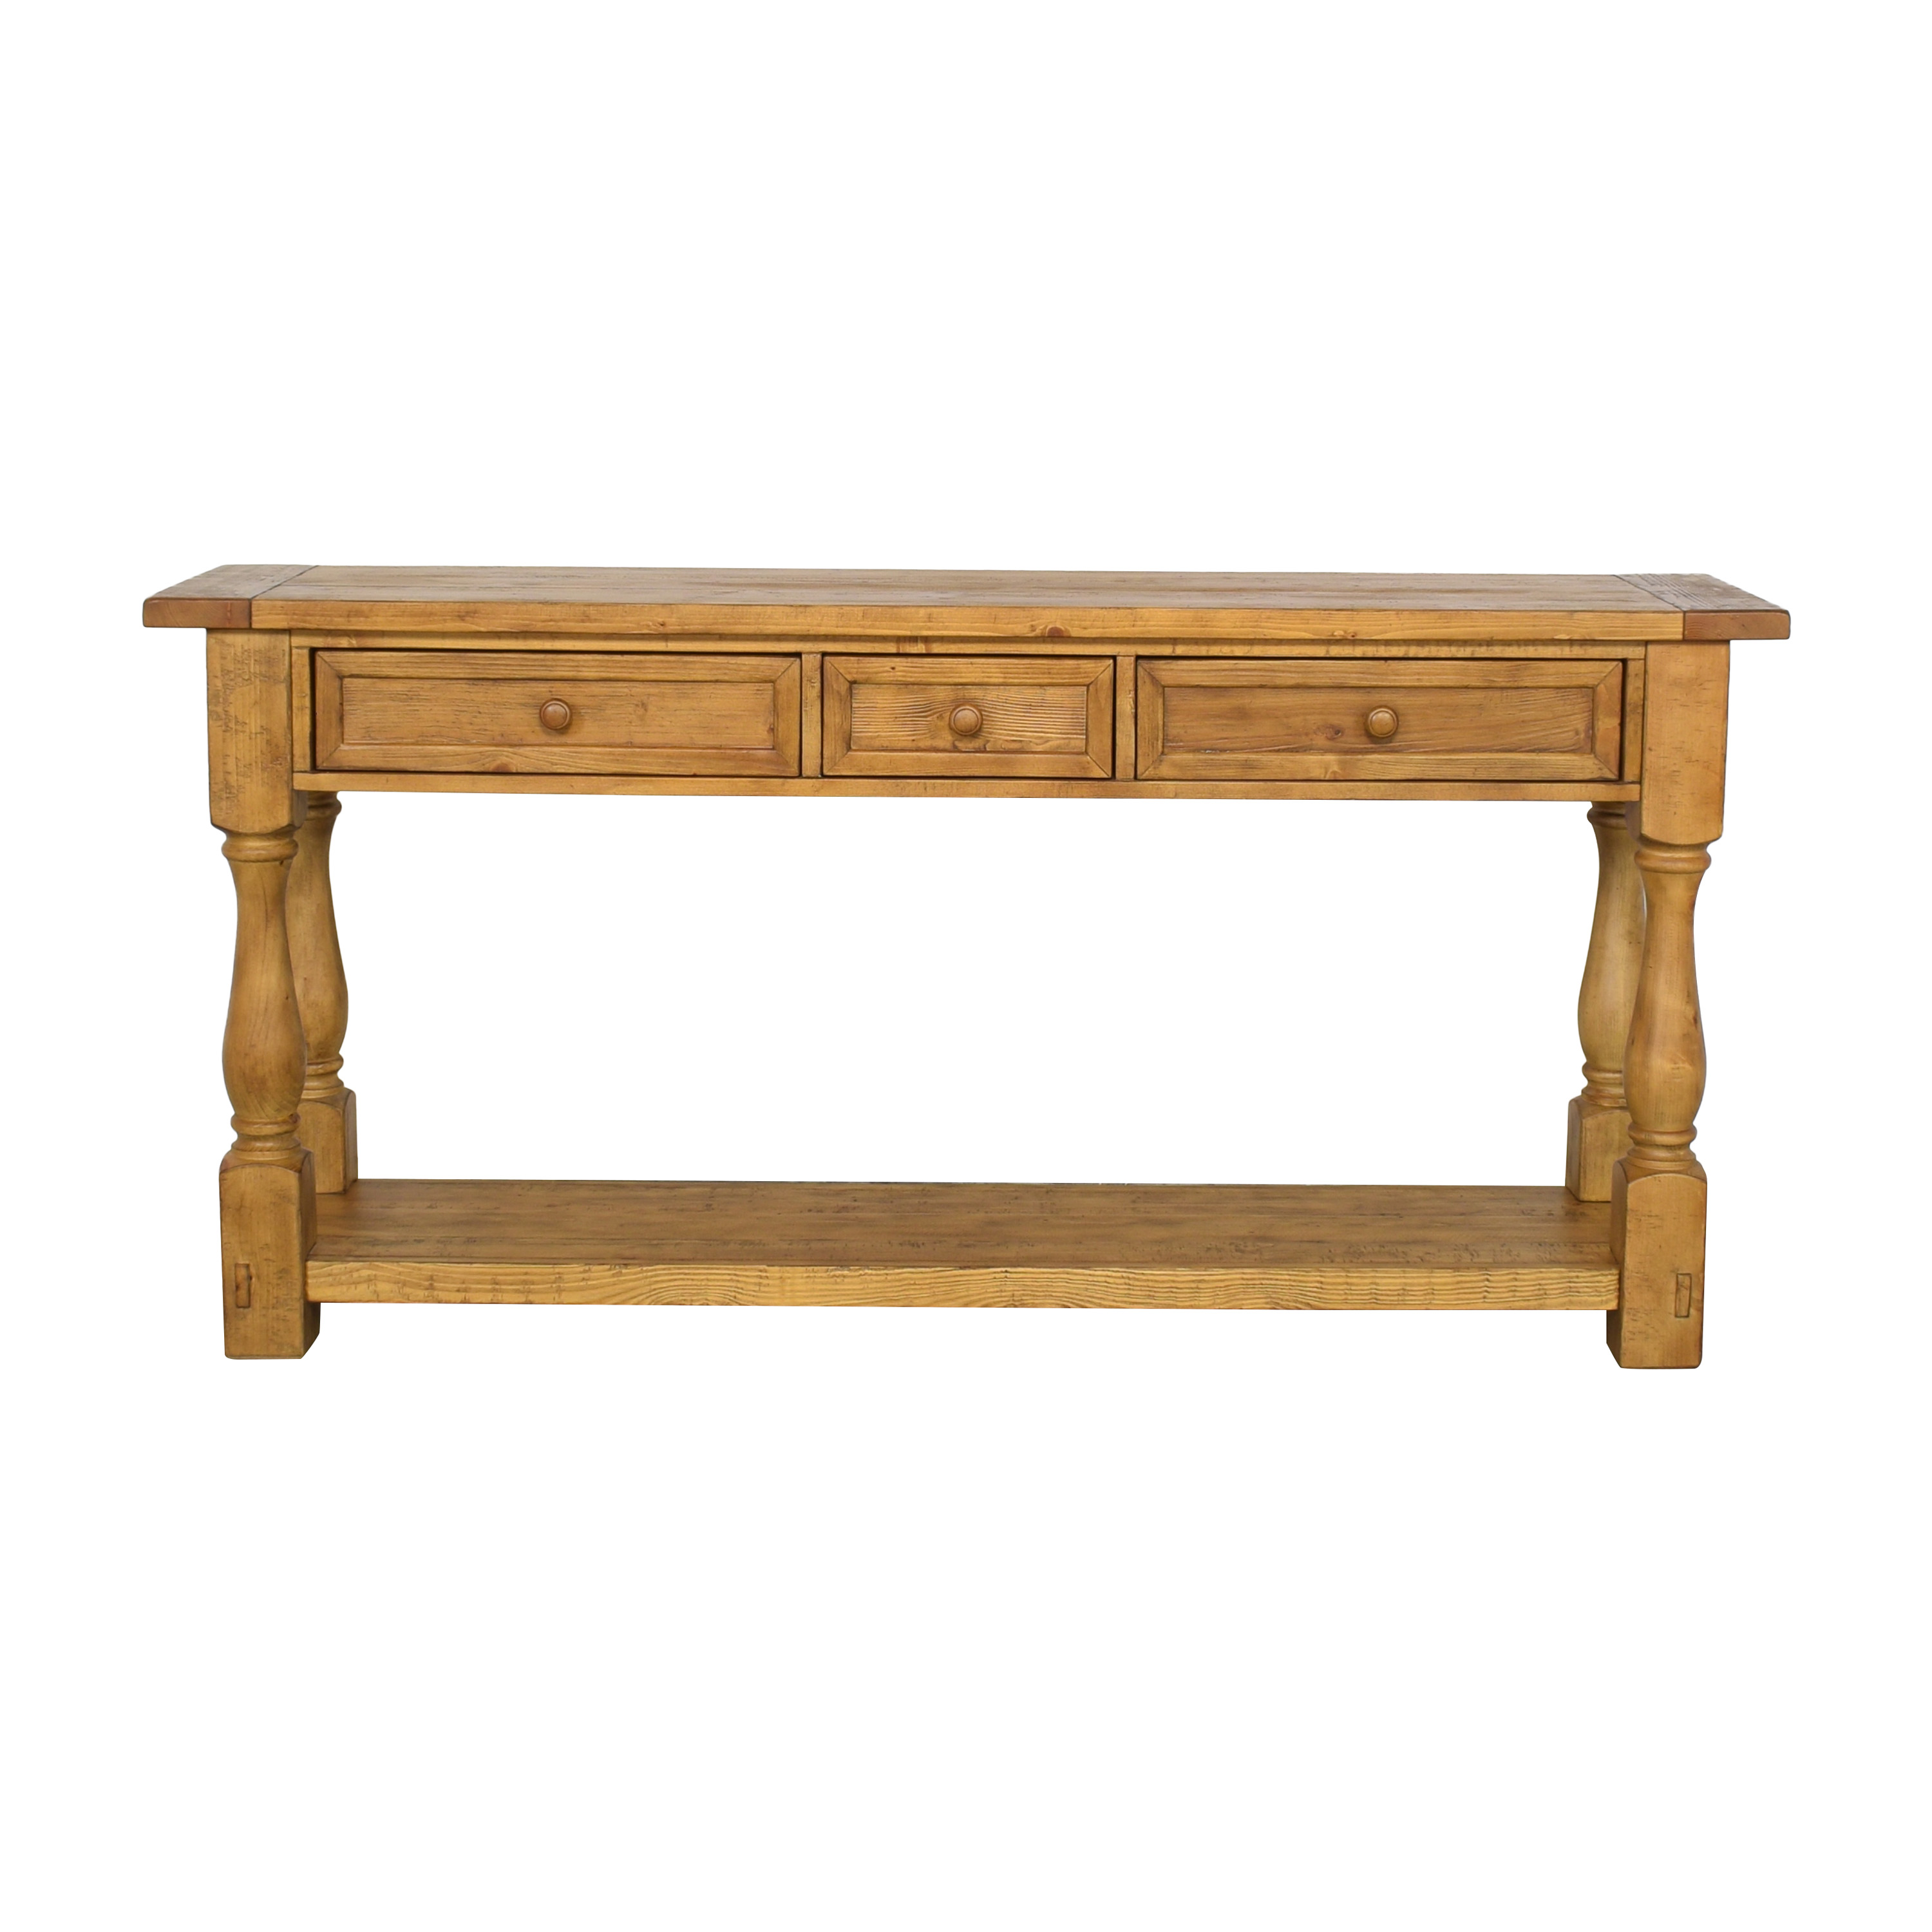 Pottery Barn Pottery Barn Console Table second hand